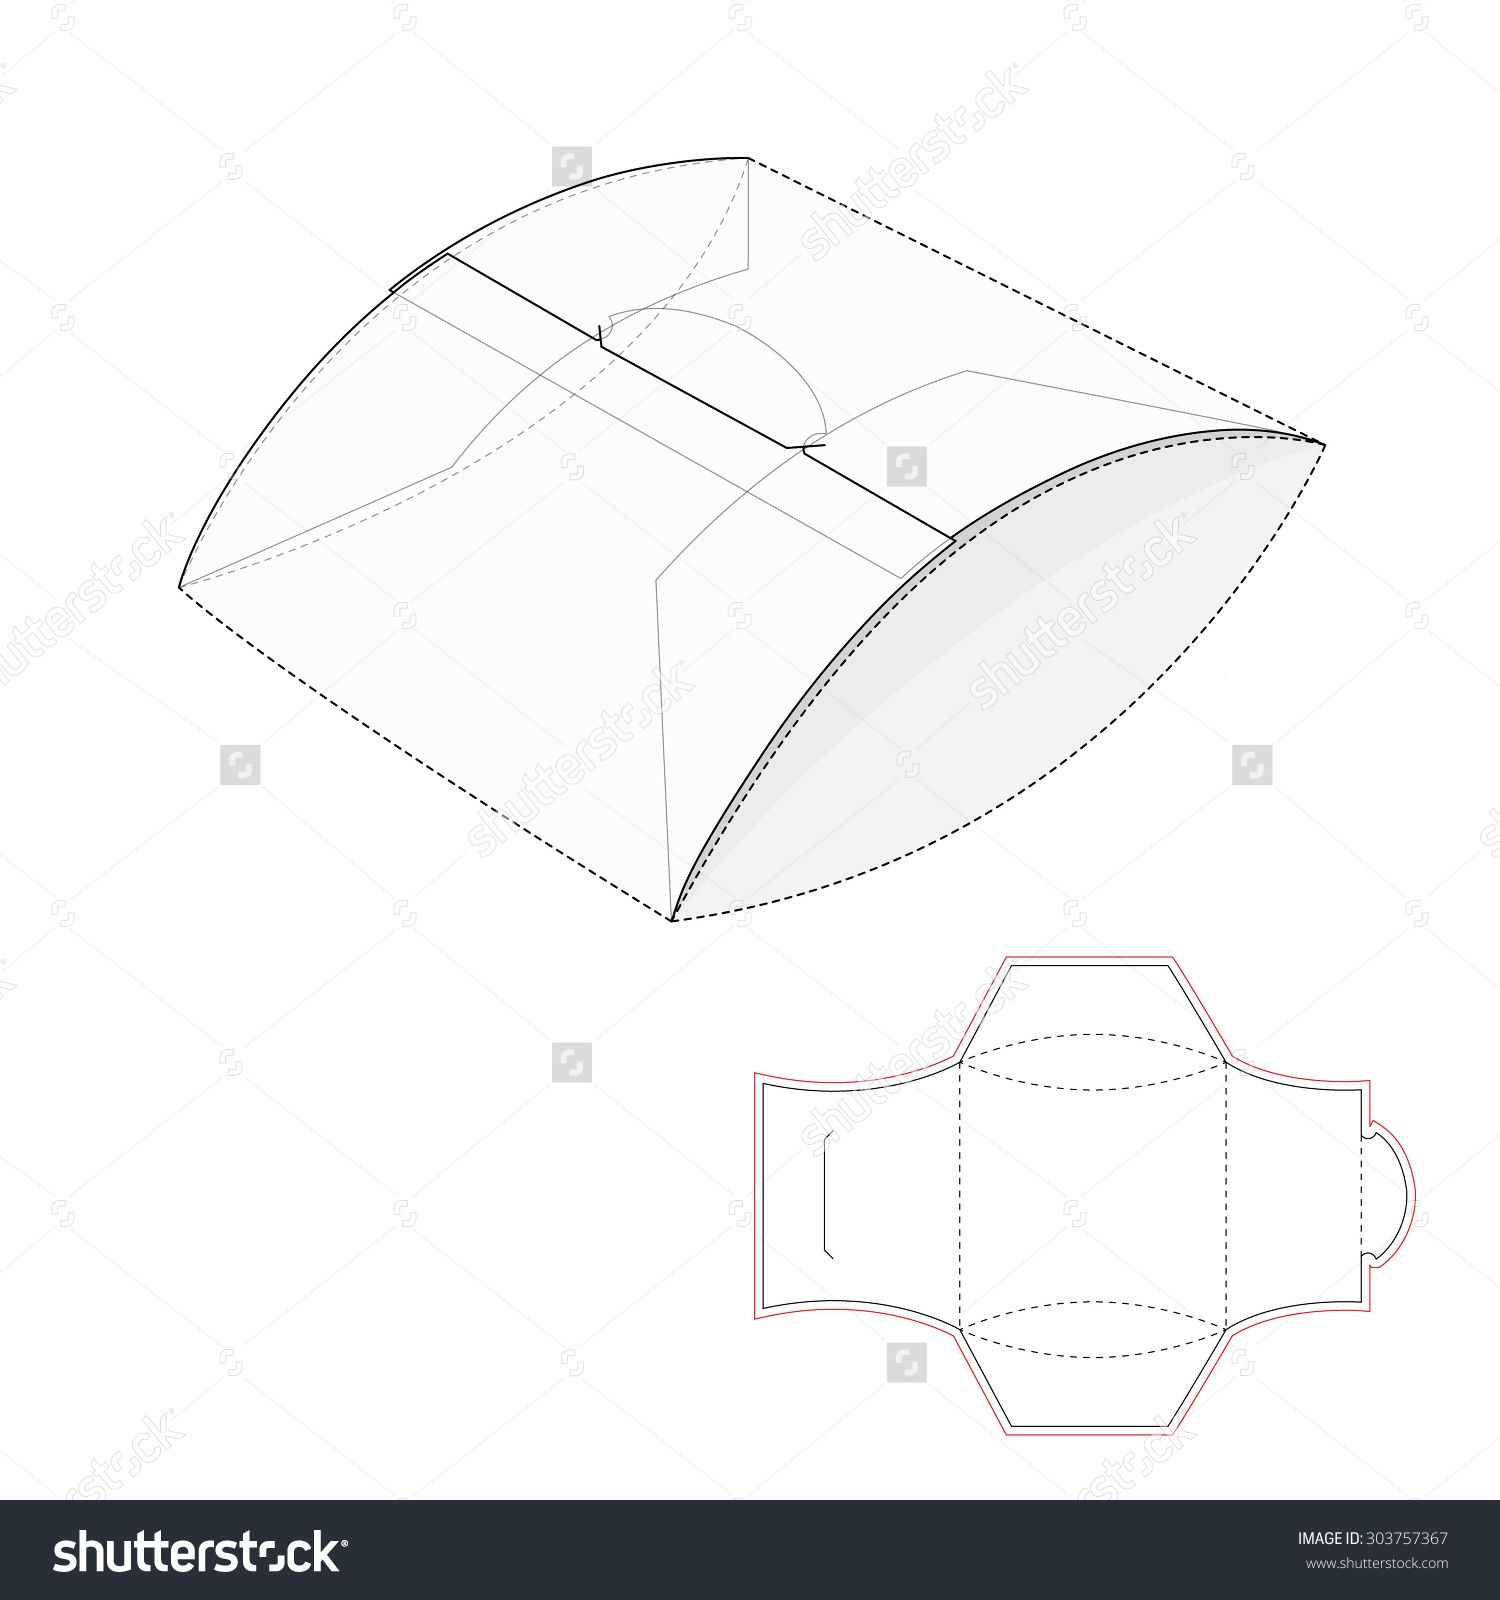 Pillow Package With Blueprint Template Stock Vector Illustration ...